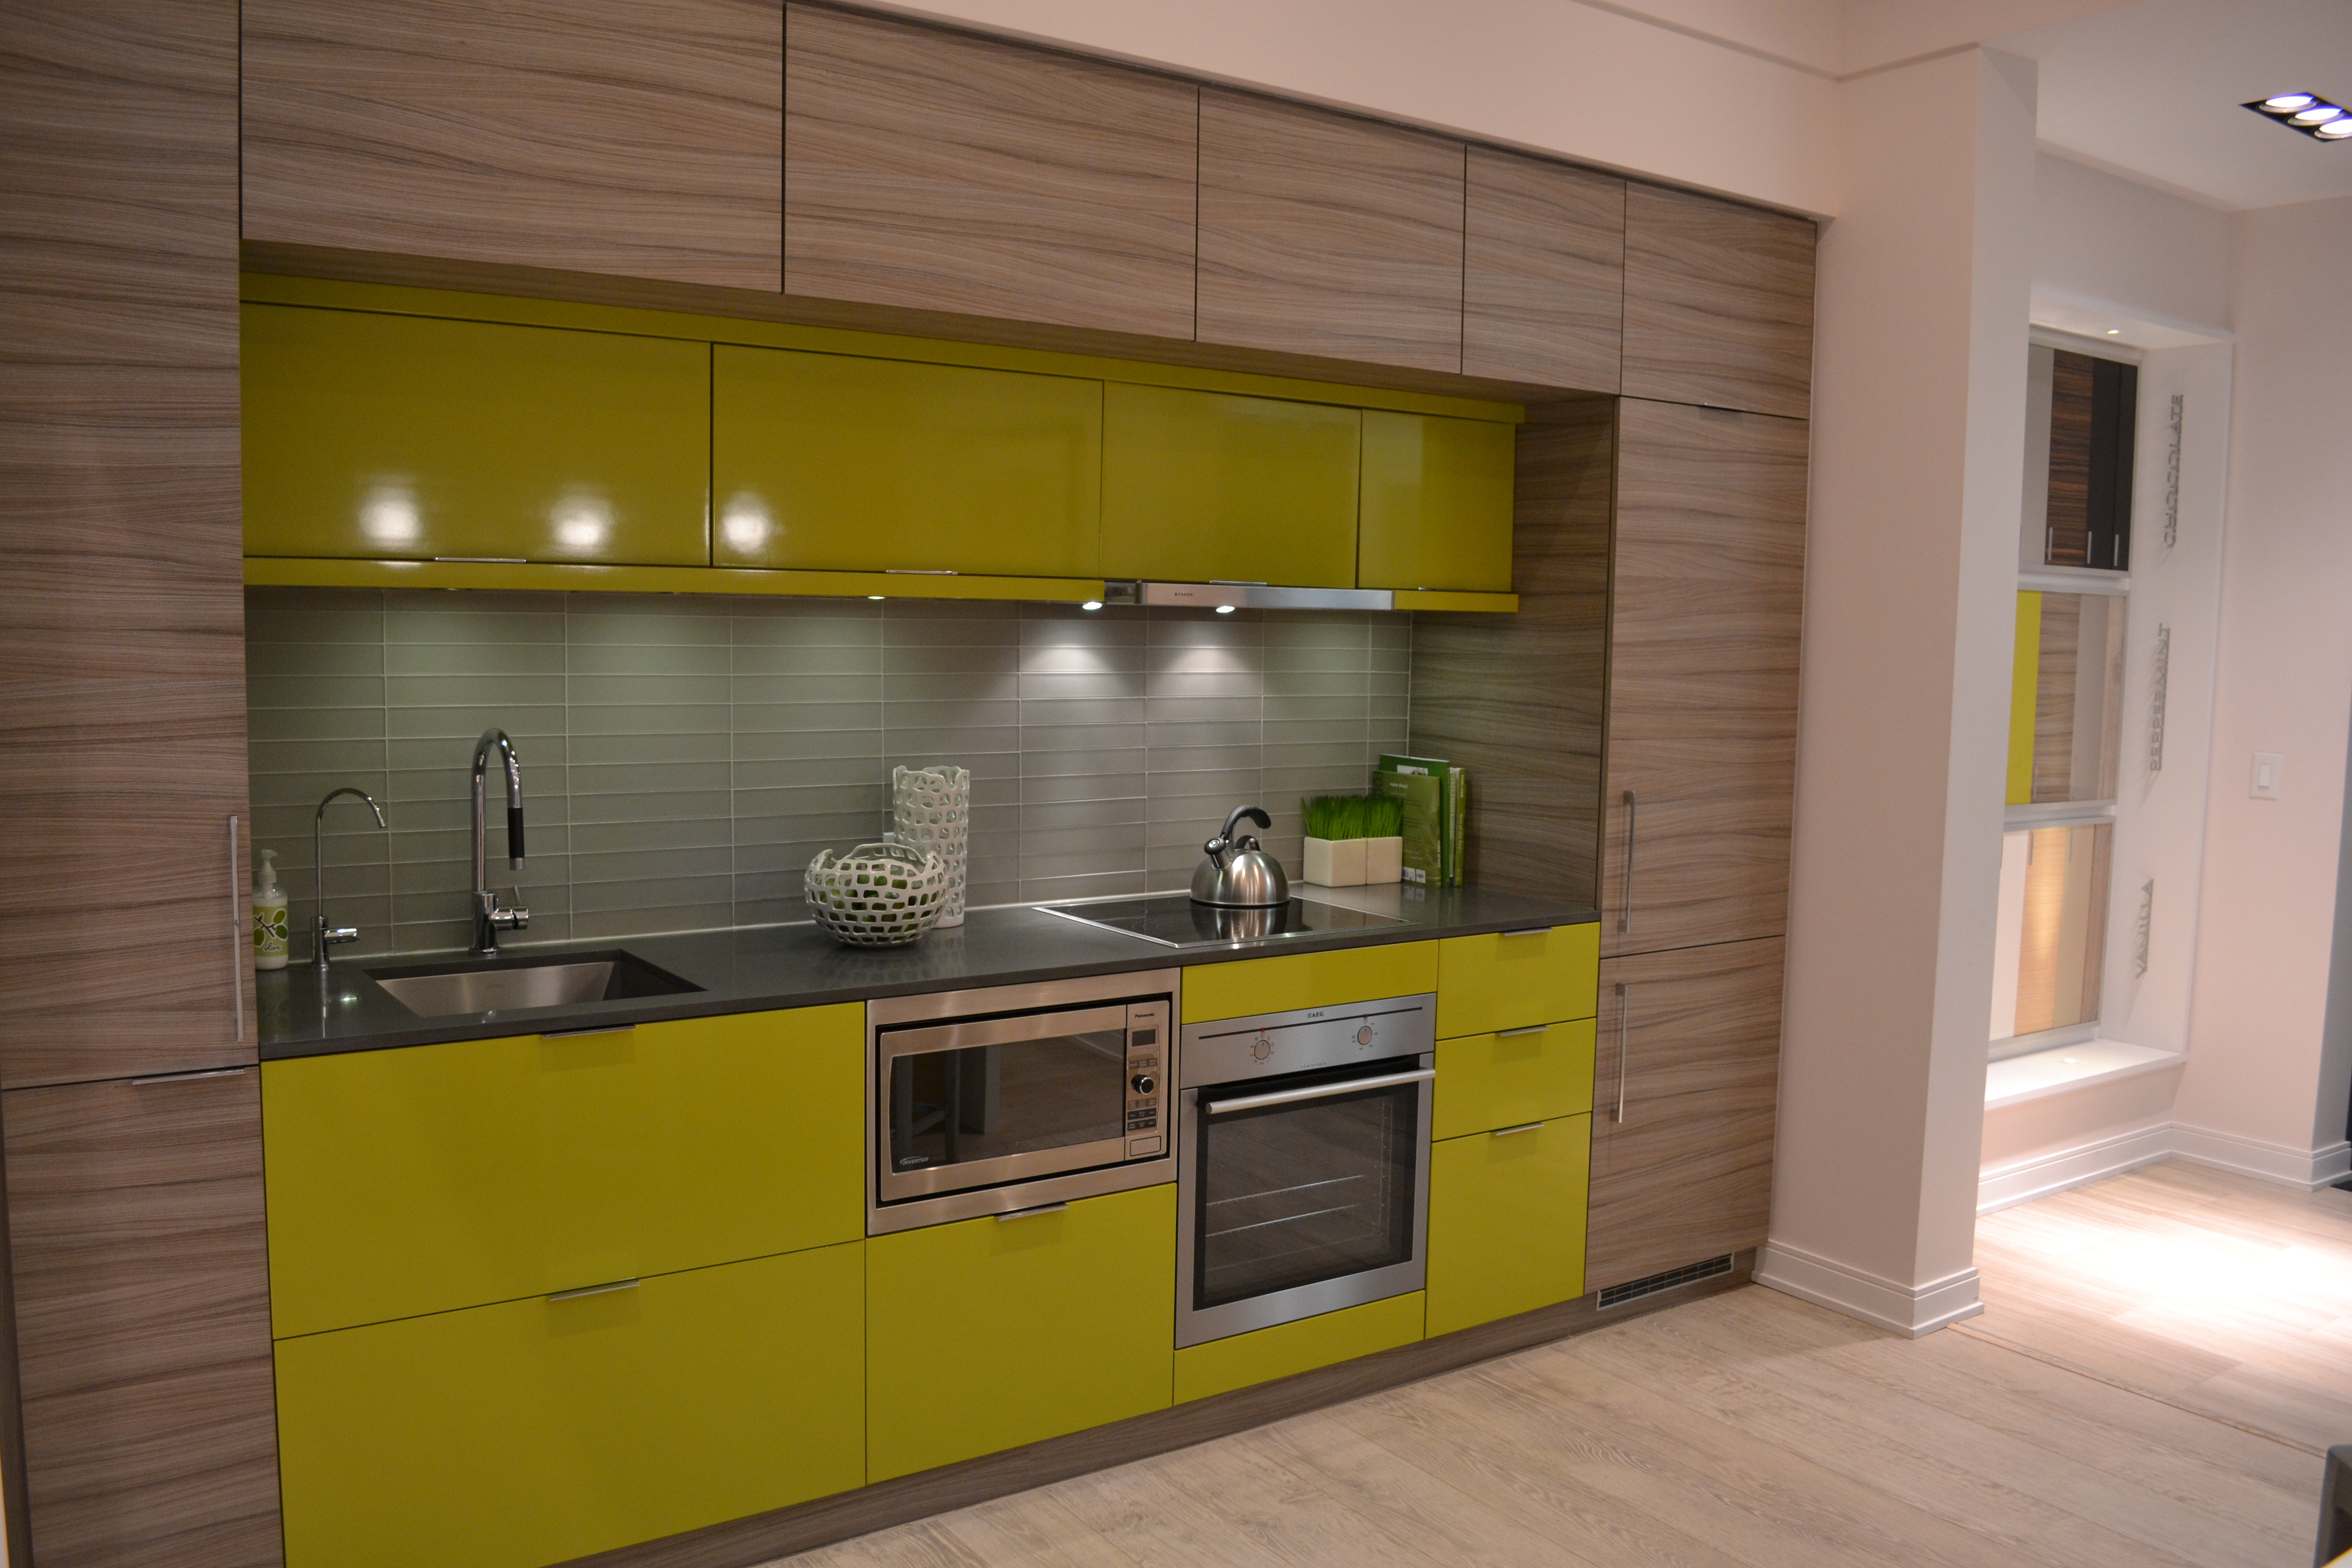 88 Scott 39 S Model Suite Is Dressed To Impress With Three Distinct Model Kitchens